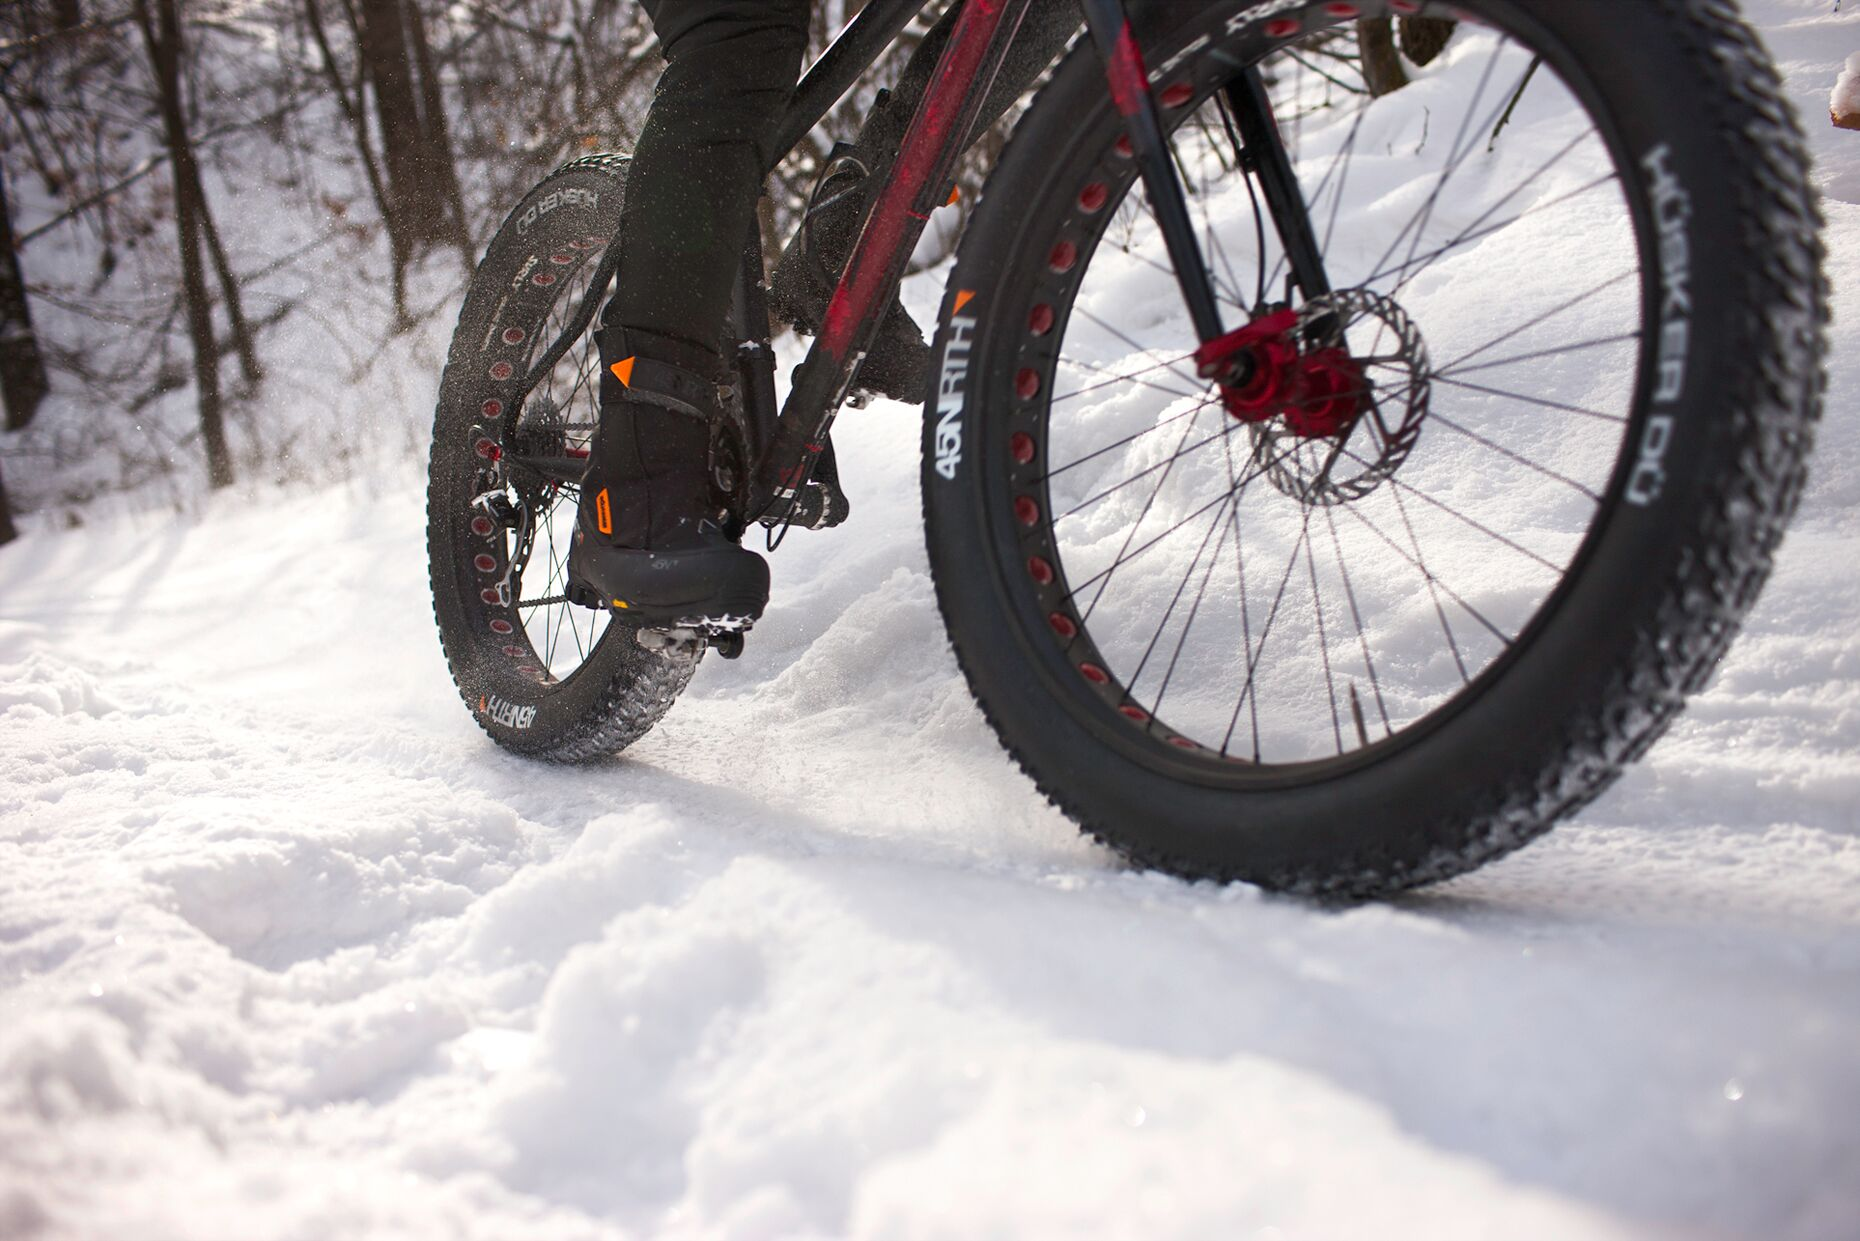 Fat Bike Etiquette: 10 Dos and Don'ts for Riding in the Snow